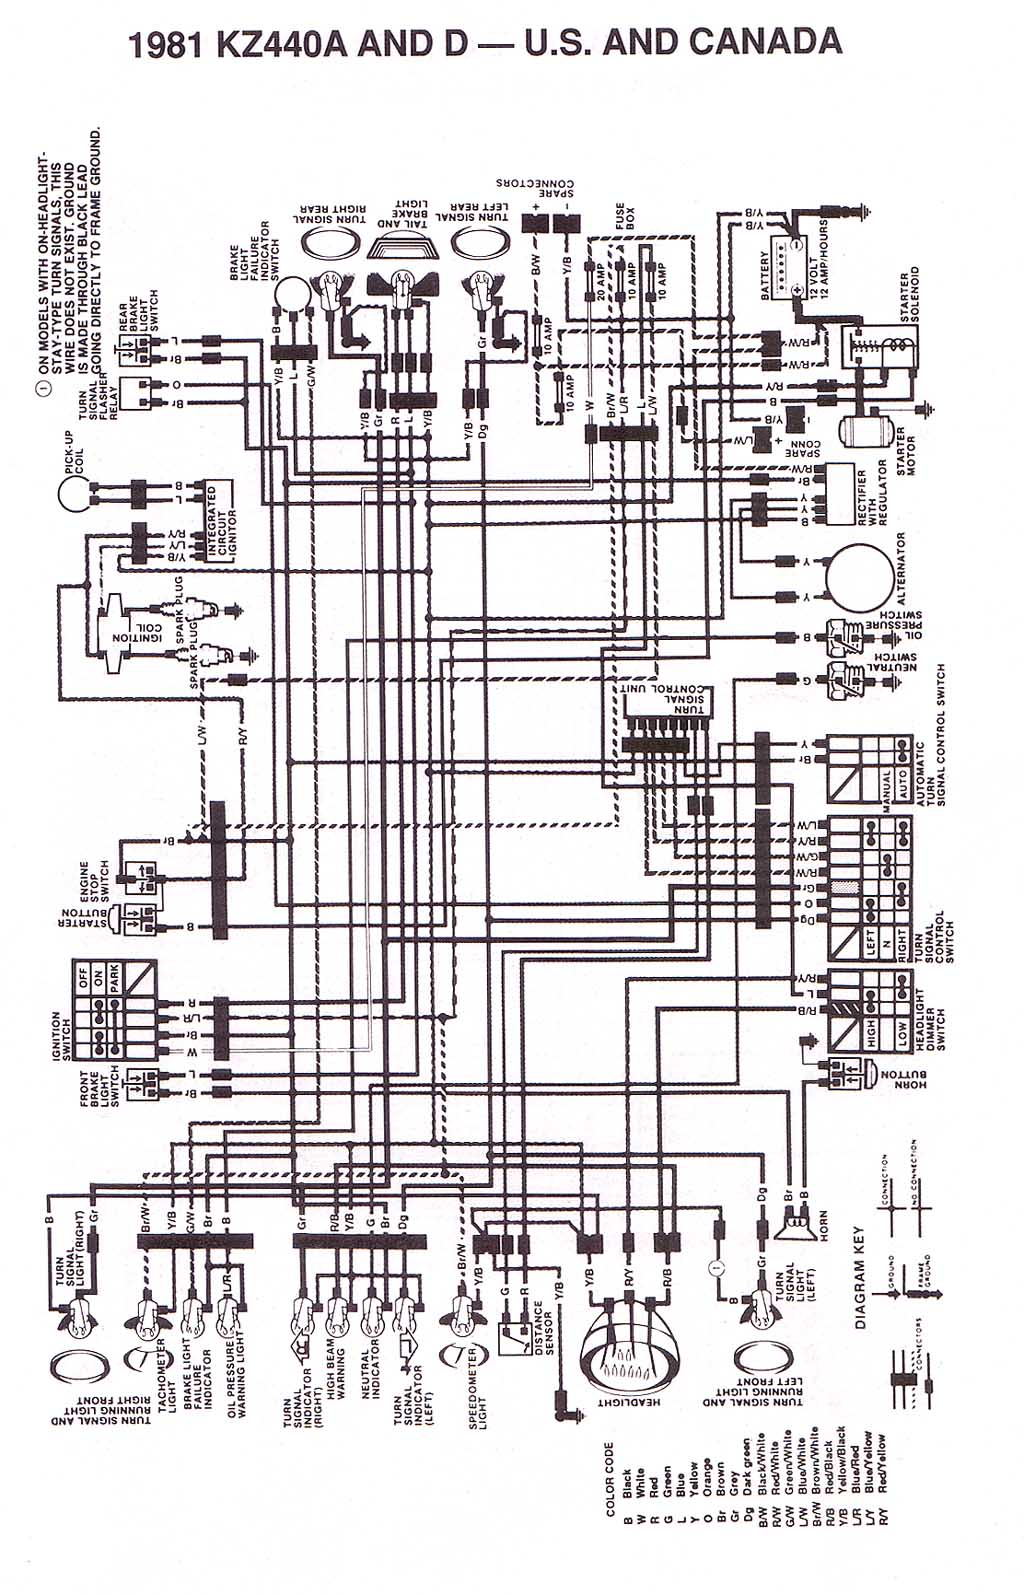 diagram] 1981 kawasaki kz440 wiring diagram full version hd quality wiring  diagram - eudiagram.gastroneo.it  diagram database